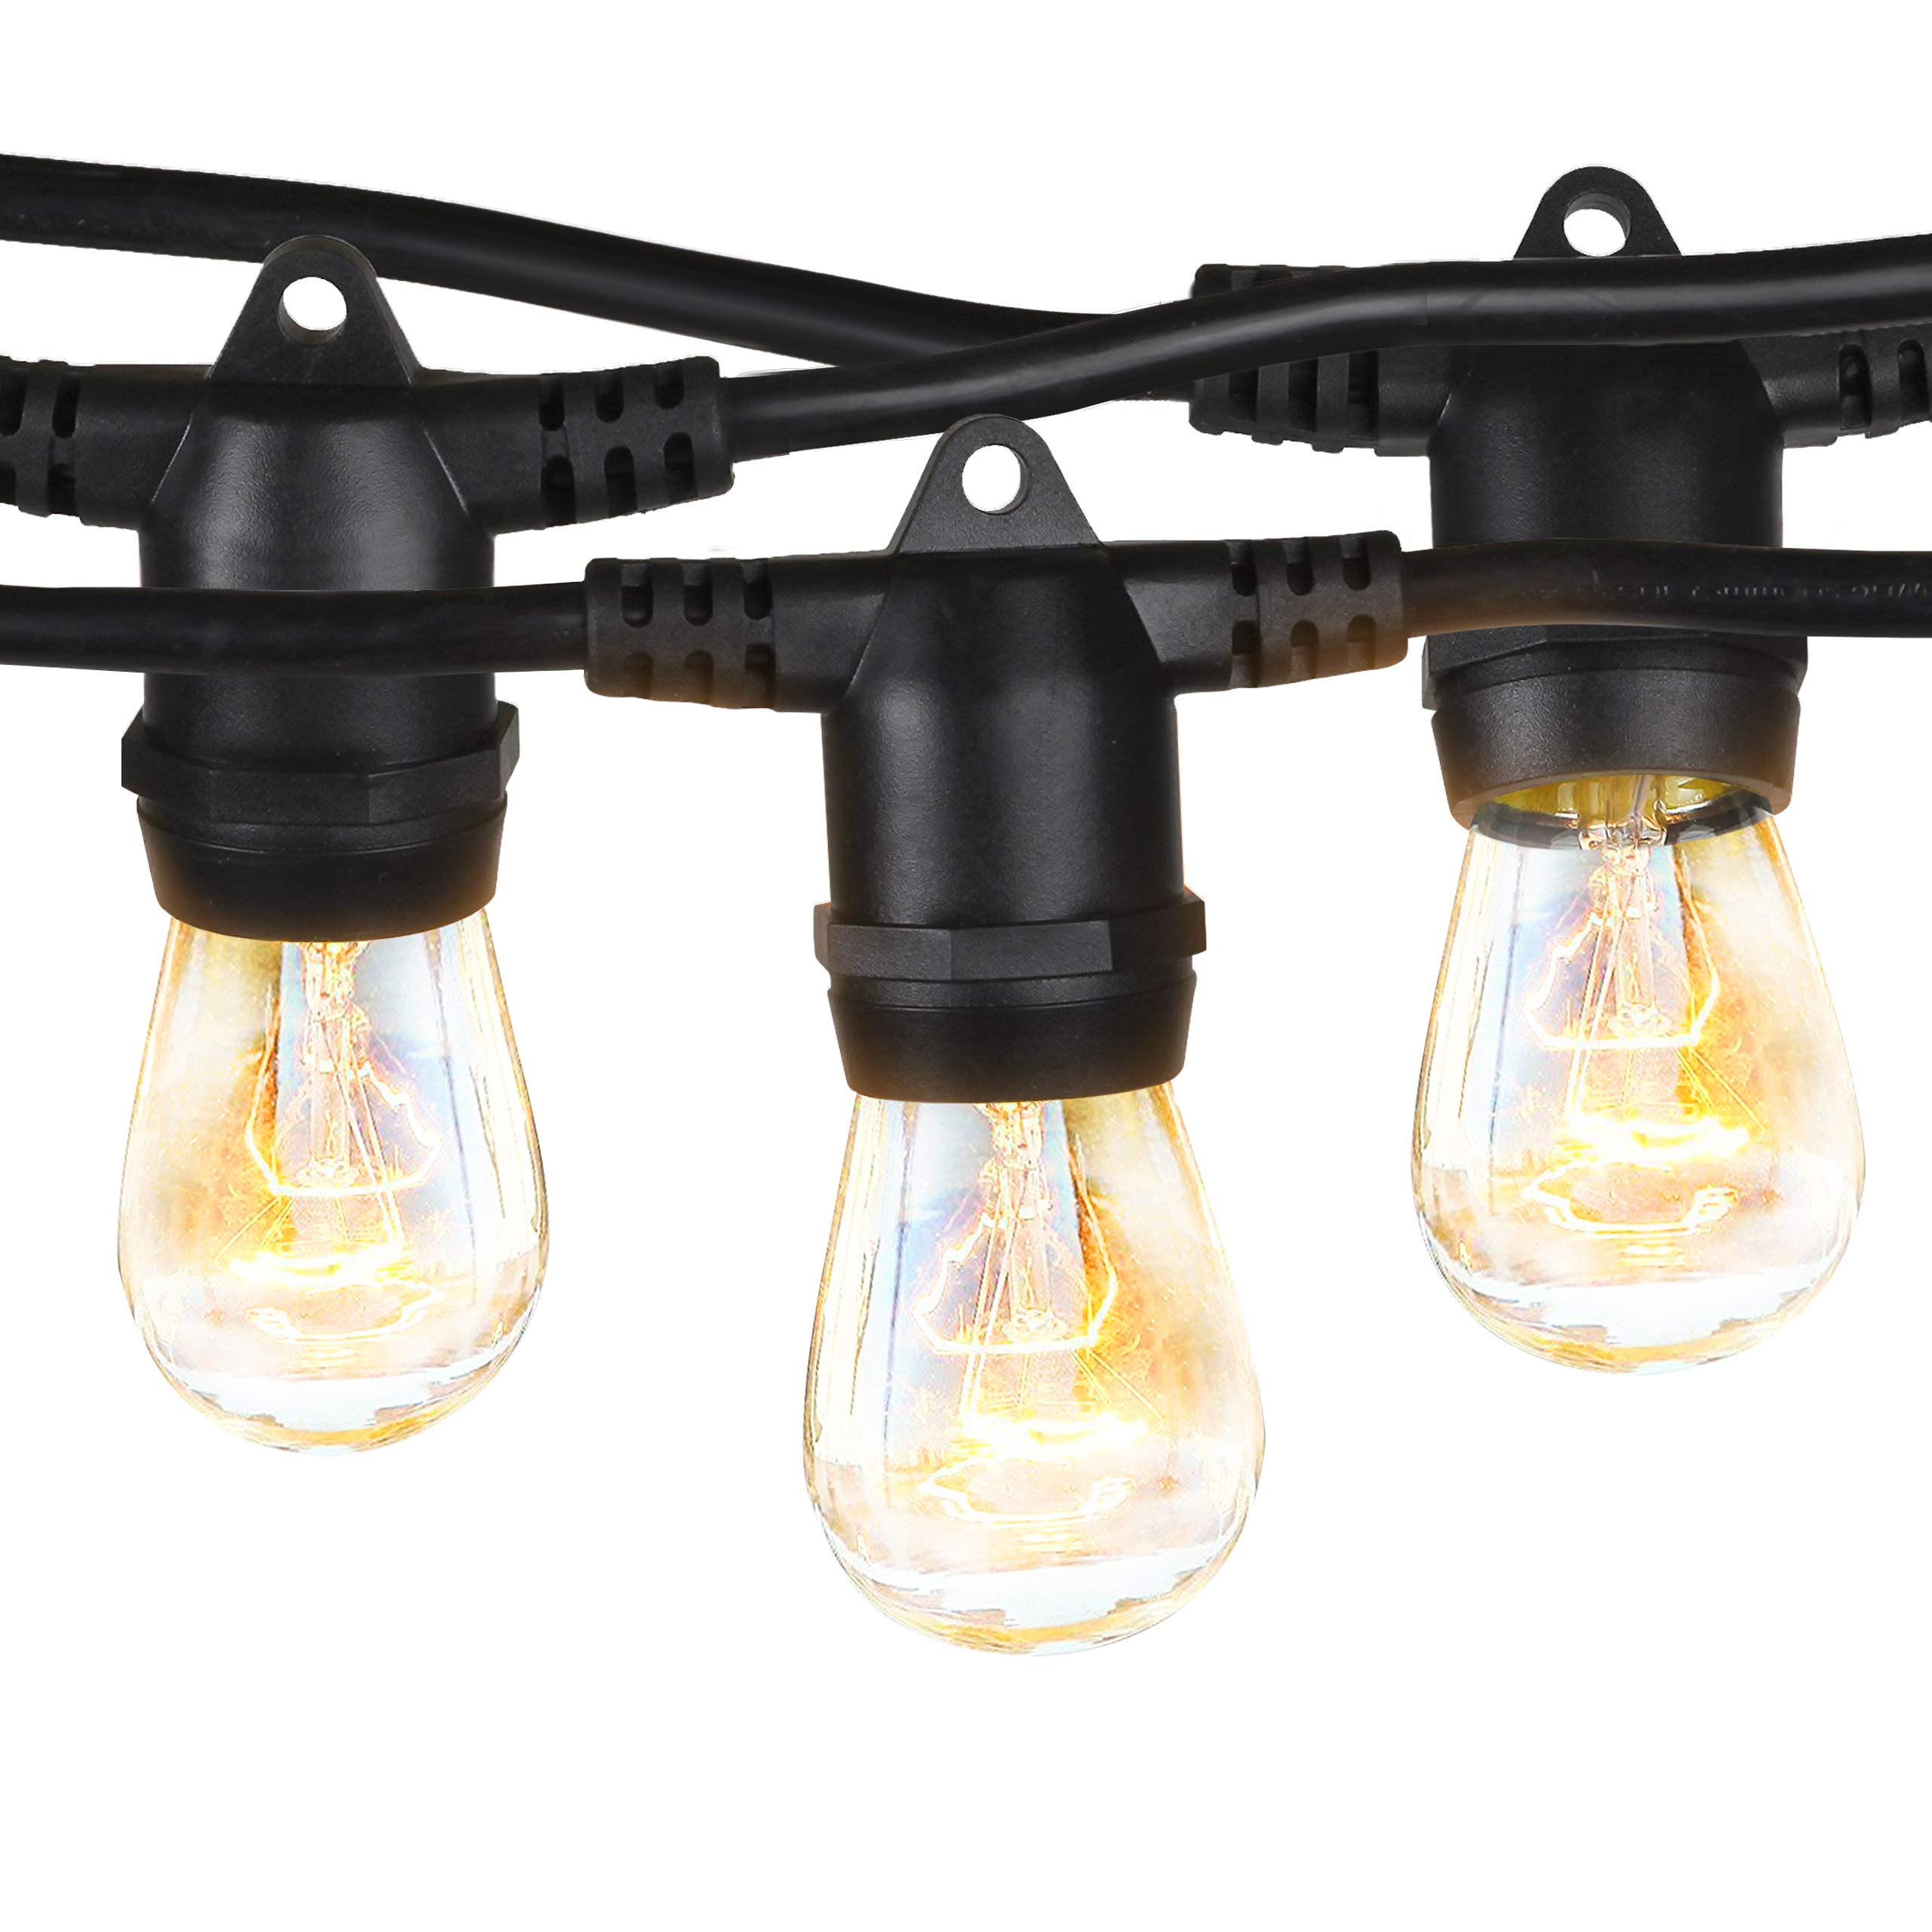 Brightech Ambience Pro - 48 Ft Cafe Lights for Indoor Spaces Create Great Bistro Ambience - Waterproof Outdoor String Lights - Hanging, Vintage 11W Incandescent Edison Bulbs